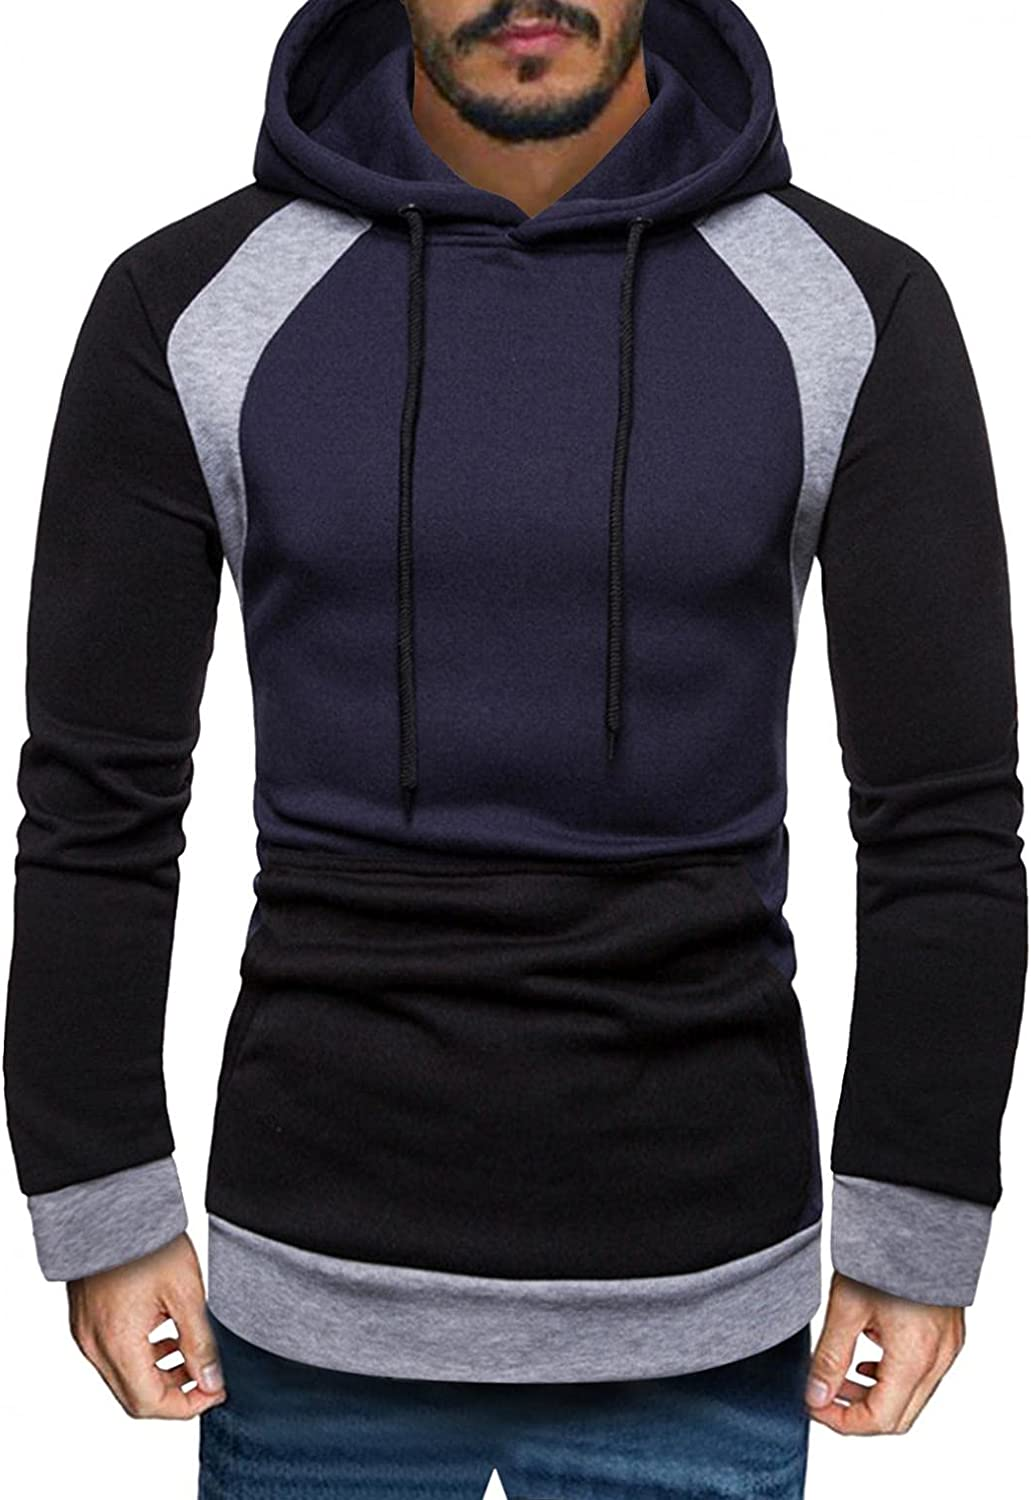 Men's Hoodies Pullover, Mens Autumn Winter Casual Long Sleeve Colorblock Sports Outwear Hooded Sweatshirts Pockets